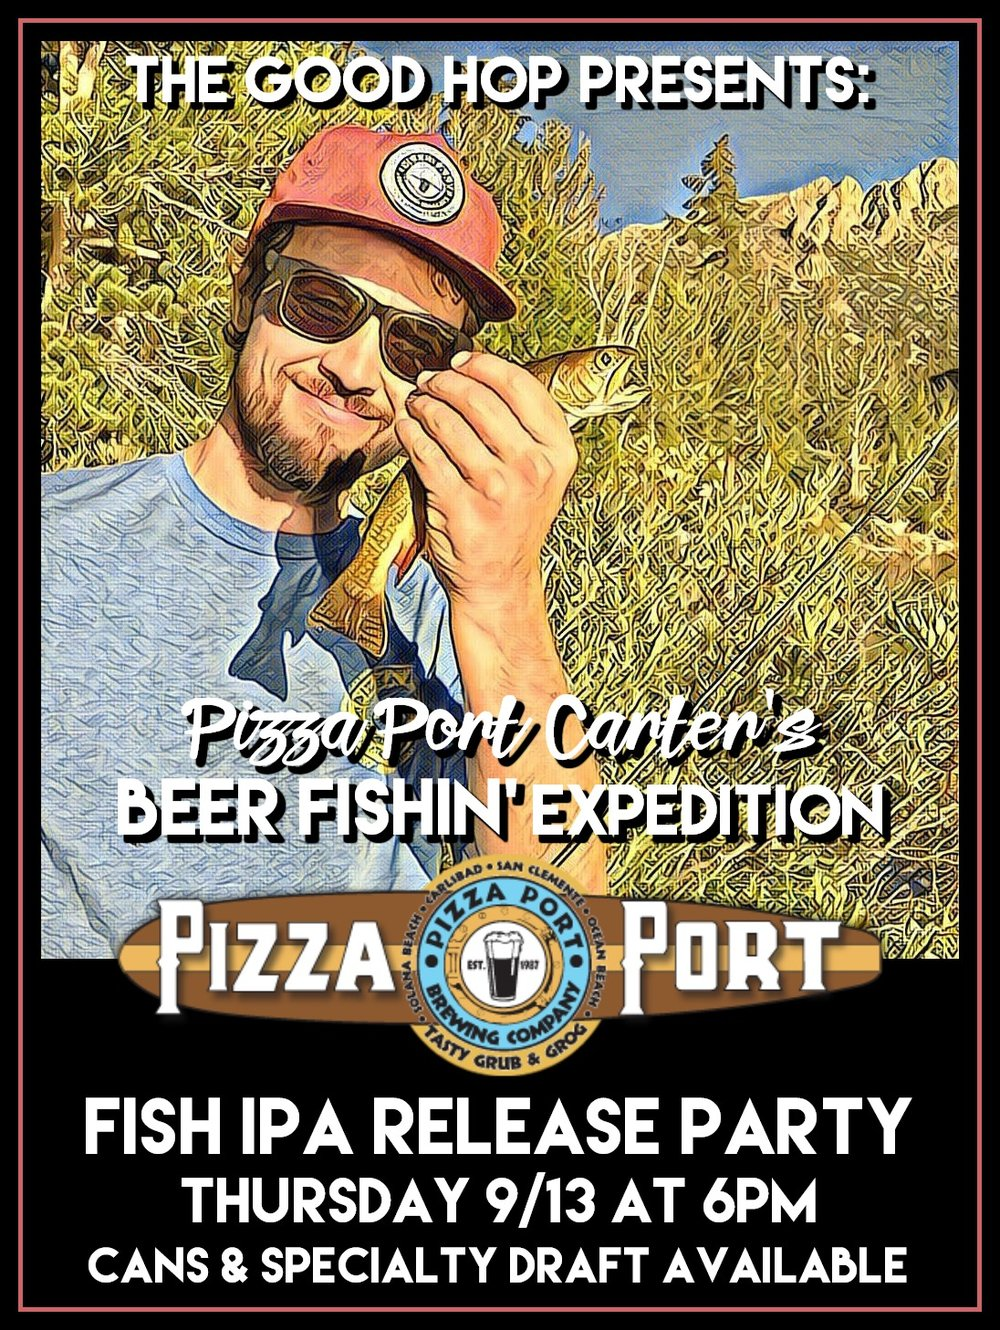 Pizza Port Beer Fishin Expedition.jpg